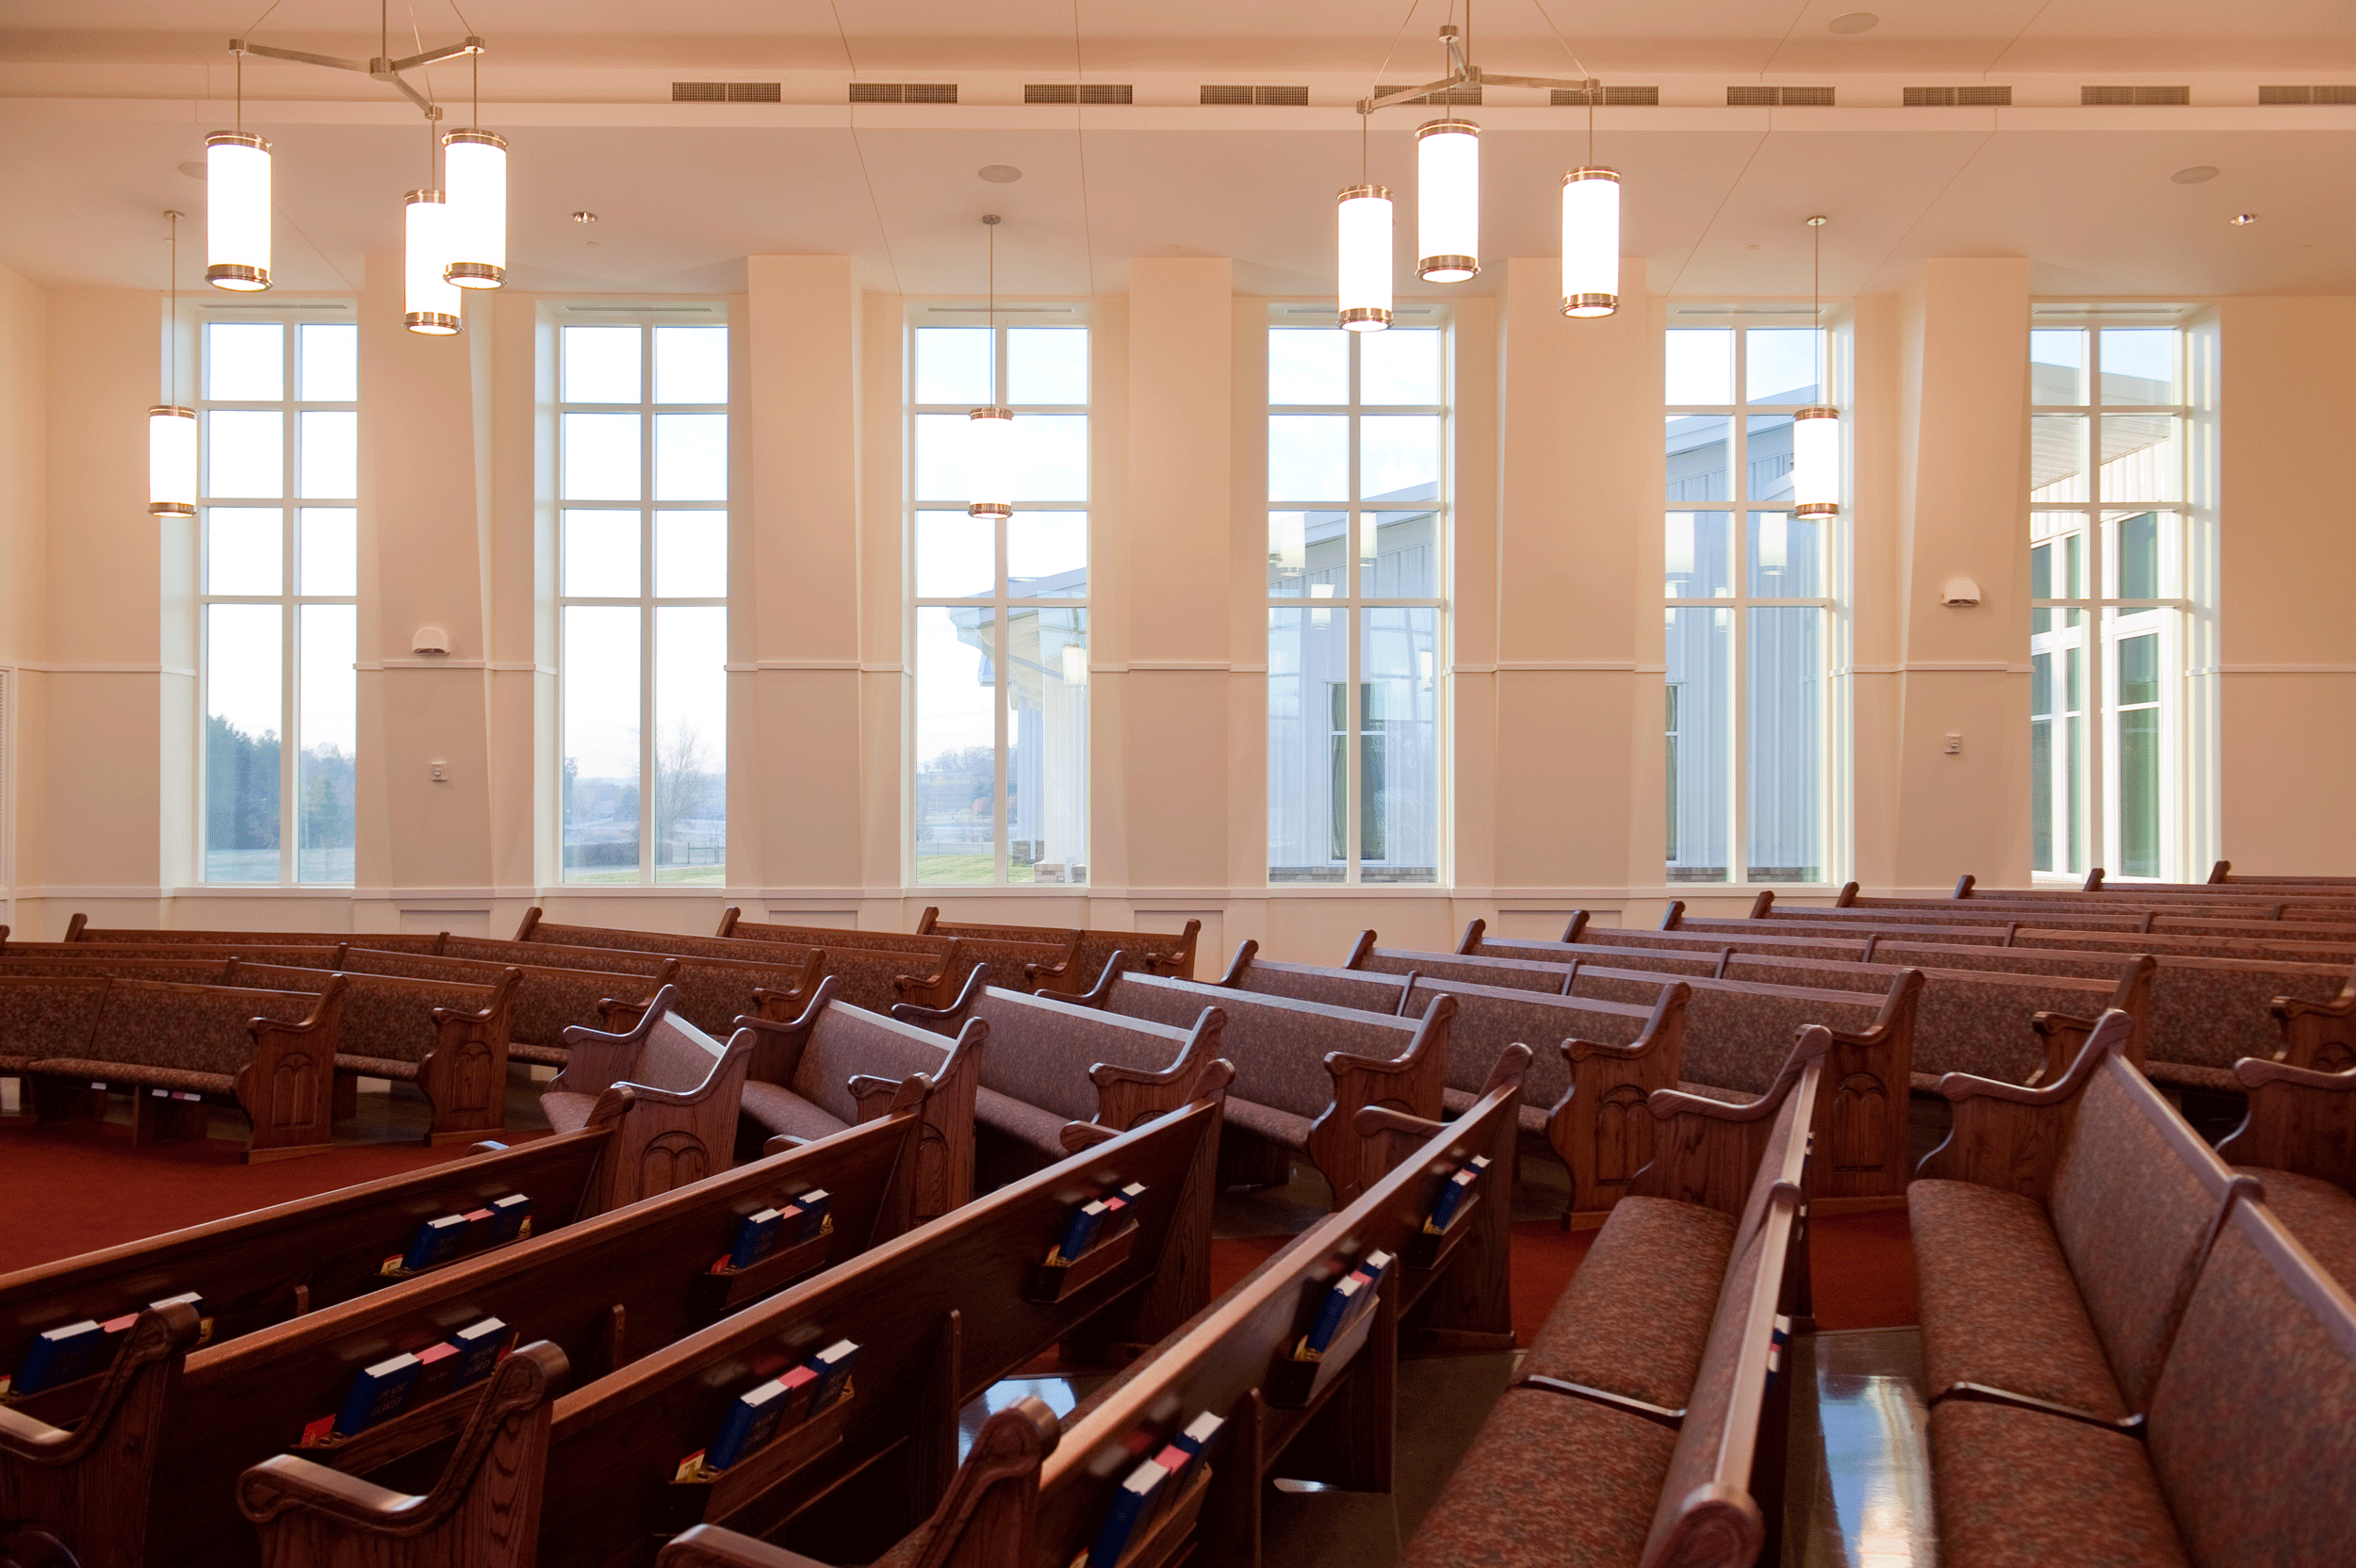 pews and window geometry